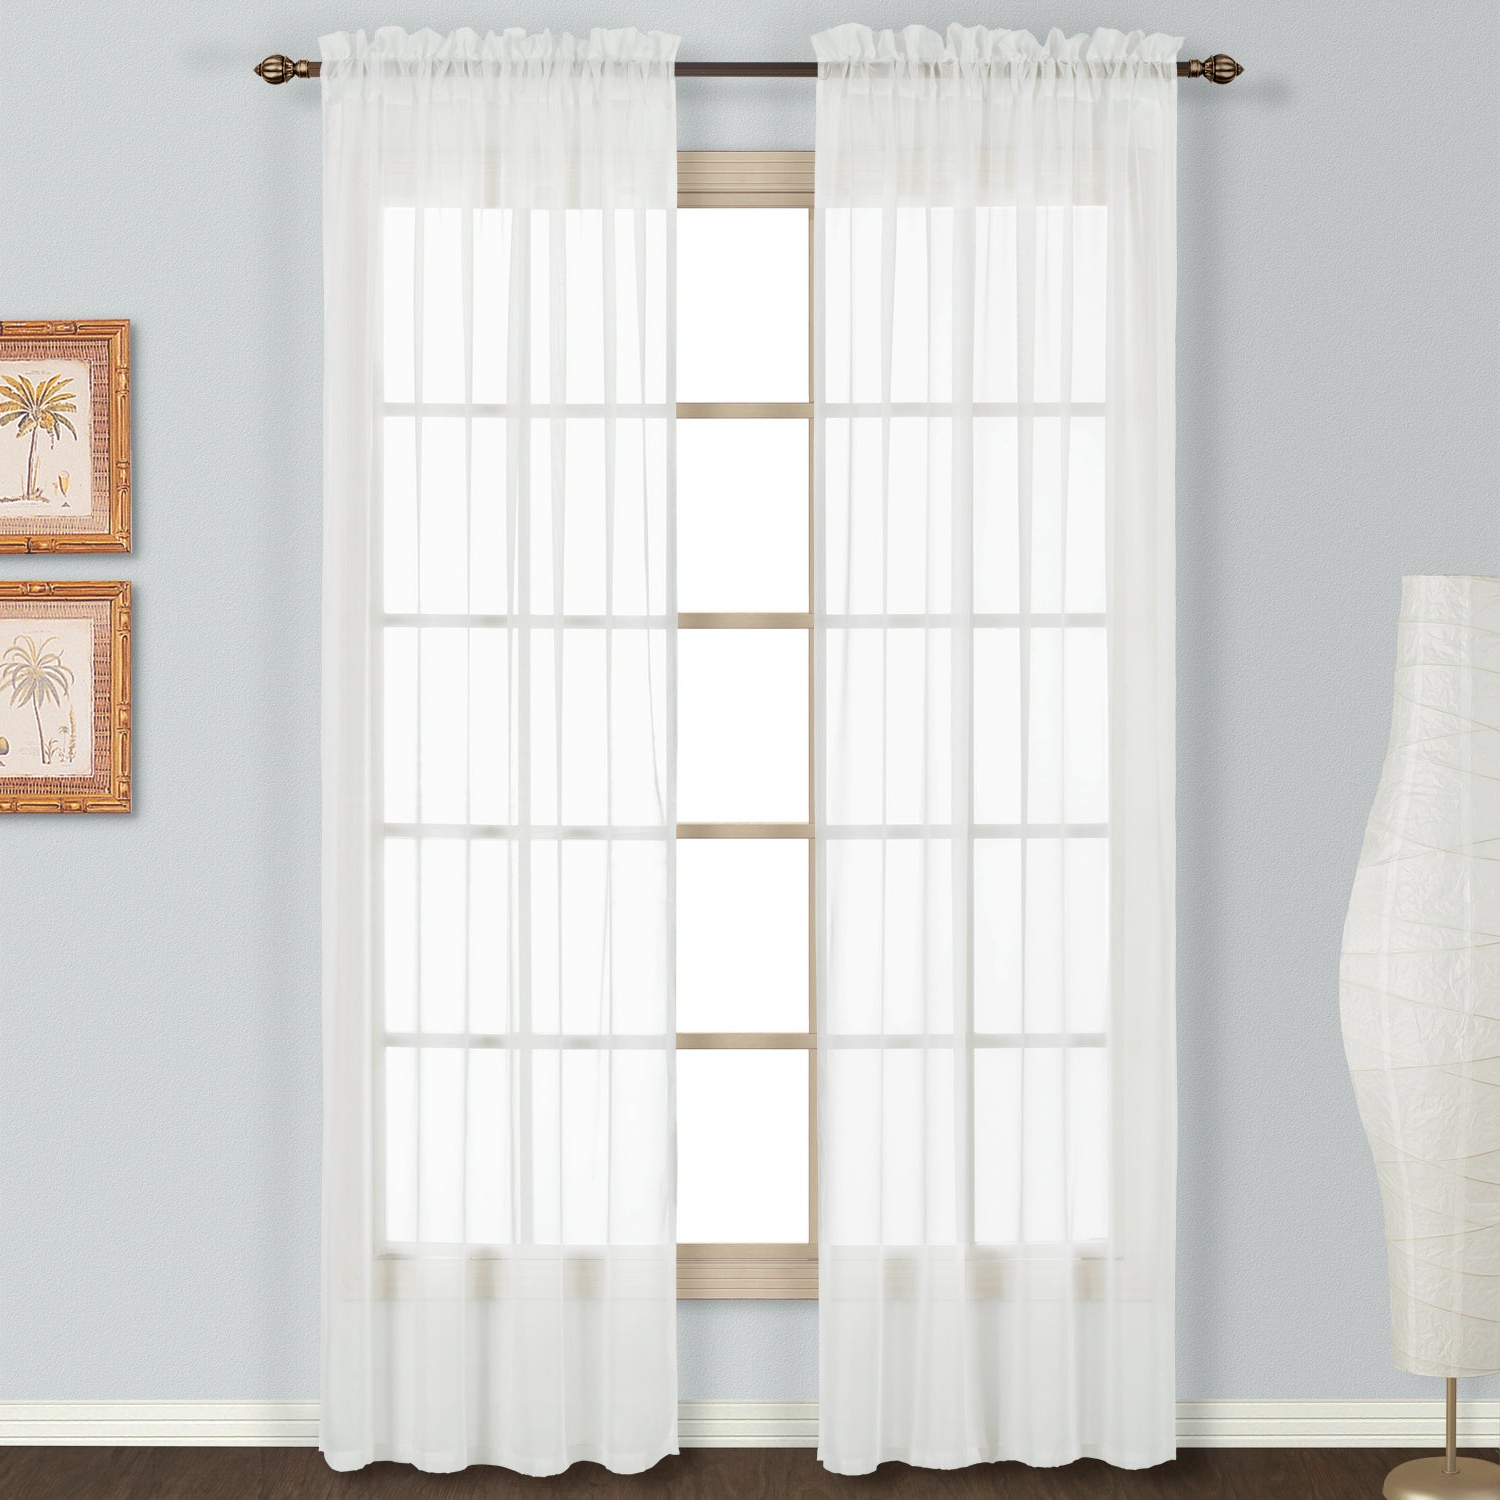 Luxury Collection Monte Carlo Sheer Curtain Panel Pair Inside Well Liked Luxury Collection Monte Carlo Sheer Curtain Panel Pairs (Gallery 1 of 20)